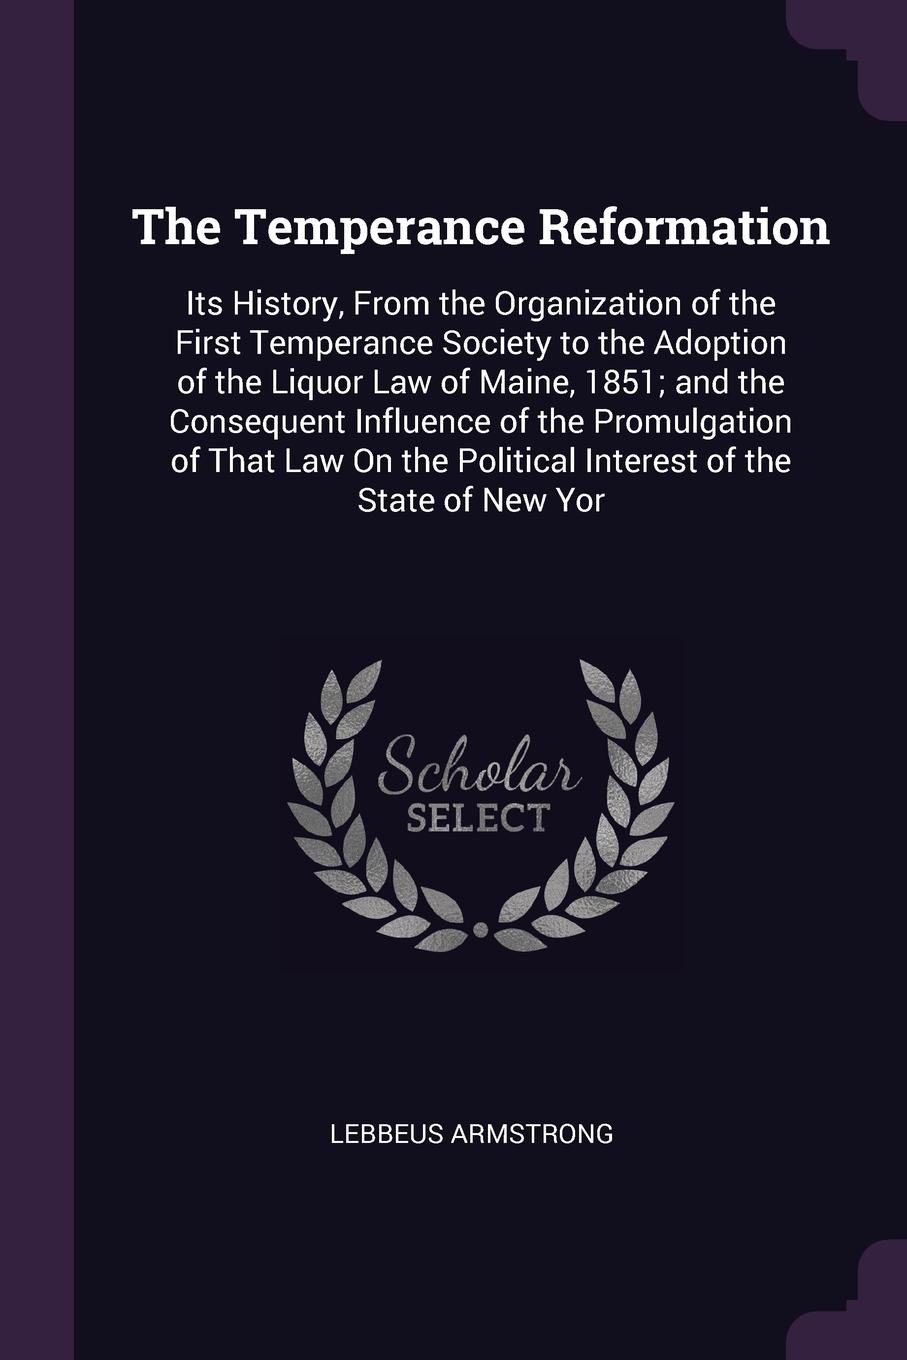 The Temperance Reformation. Its History, From the Organization of the First Temperance Society to the Adoption of the Liquor Law of Maine, 1851; and the Consequent Influence of the Promulgation of That Law On the Political Interest of the State of...